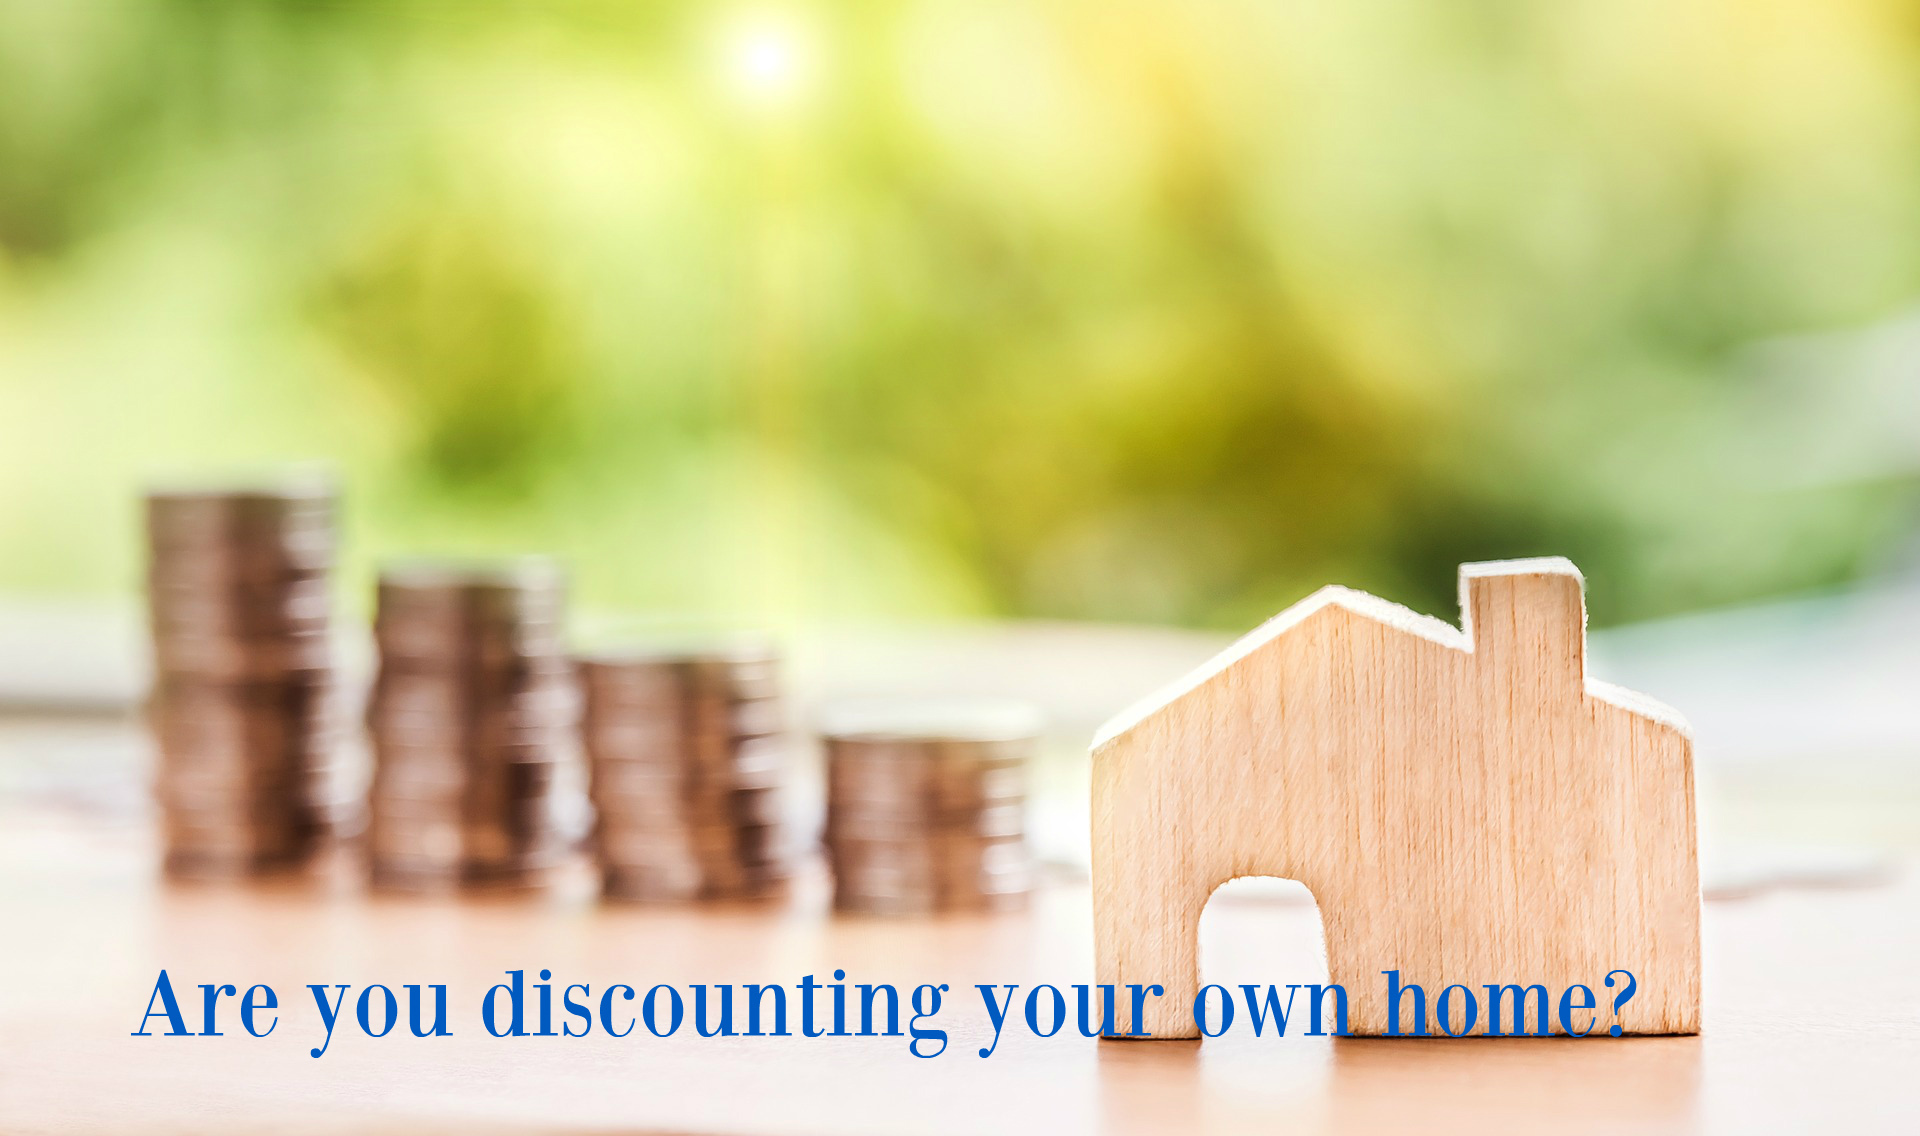 Are you discounting your home?